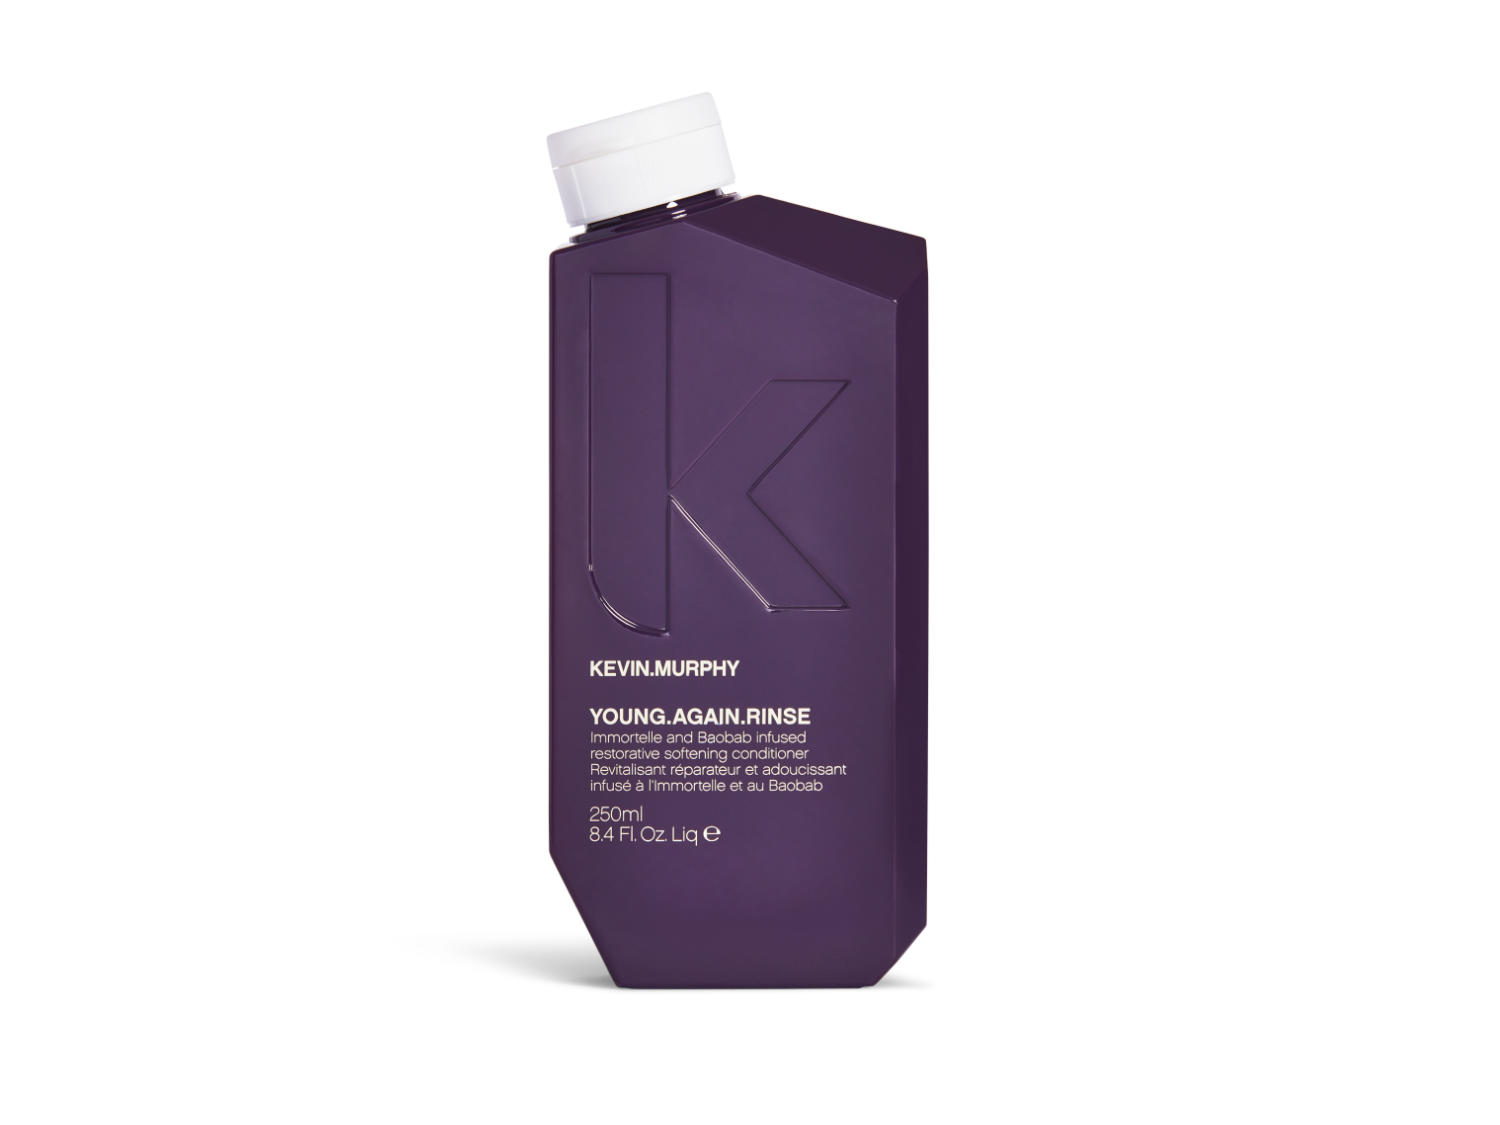 Arma Beauty - Kevin Murphy - YOUNG.AGAIN.RINSE